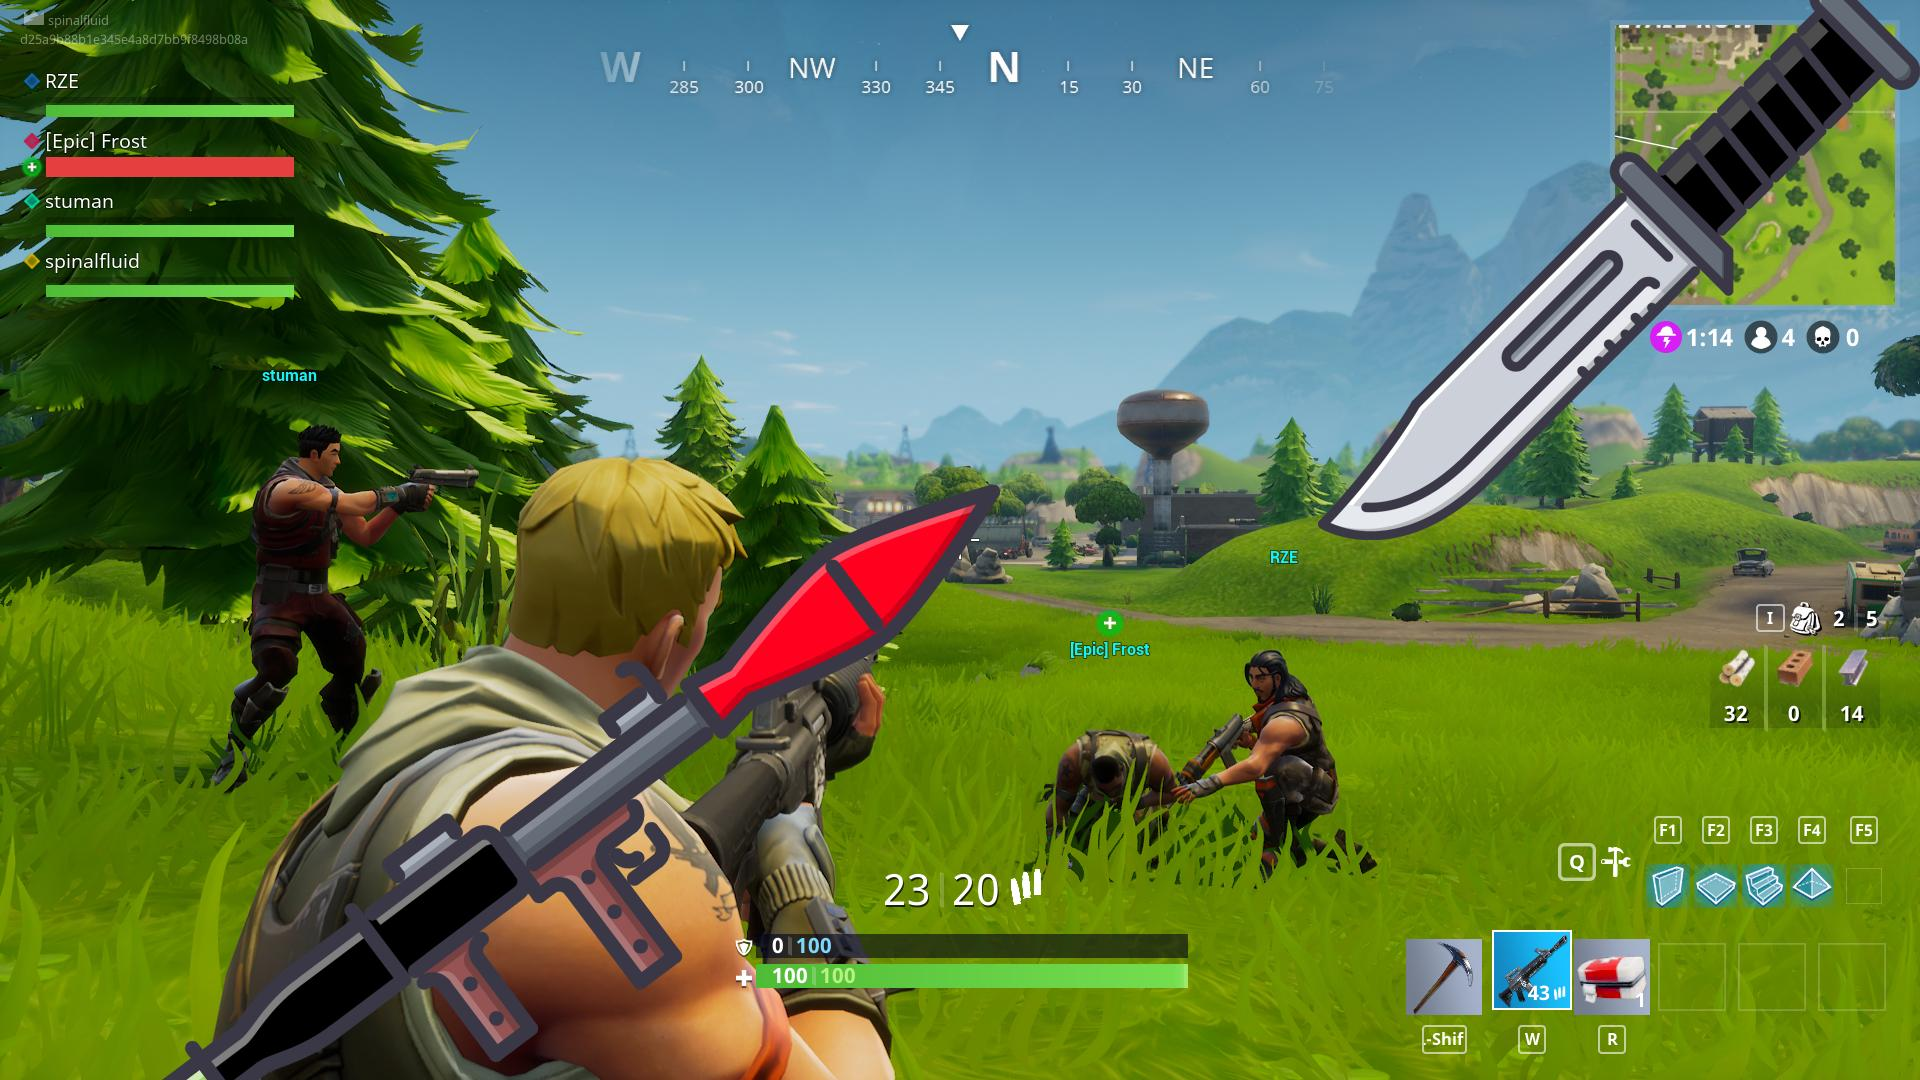 Fortnite Battle Royale game: 2018 guide new tips for Android - APK ...